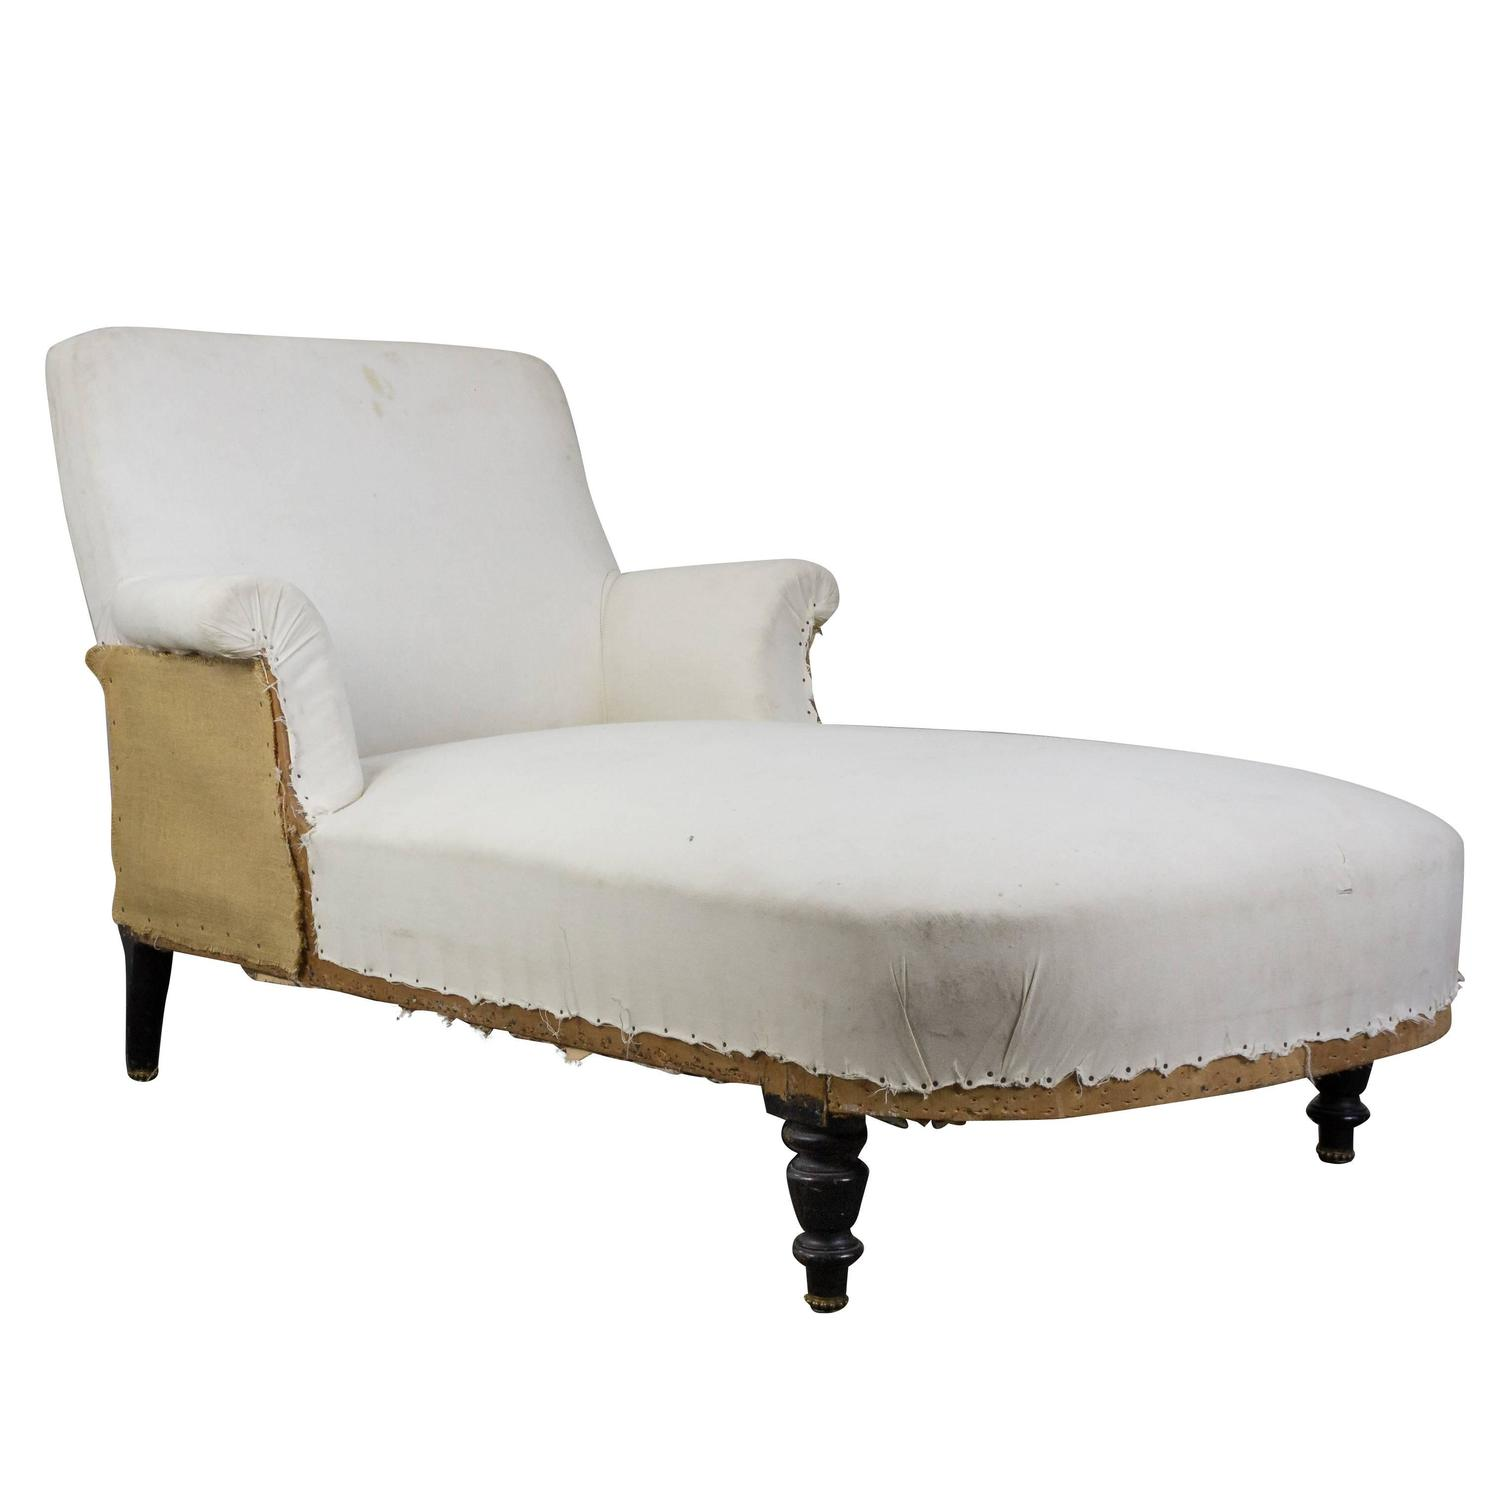 French Chaise French 19th Century Chaise Lounge For Sale At 1stdibs